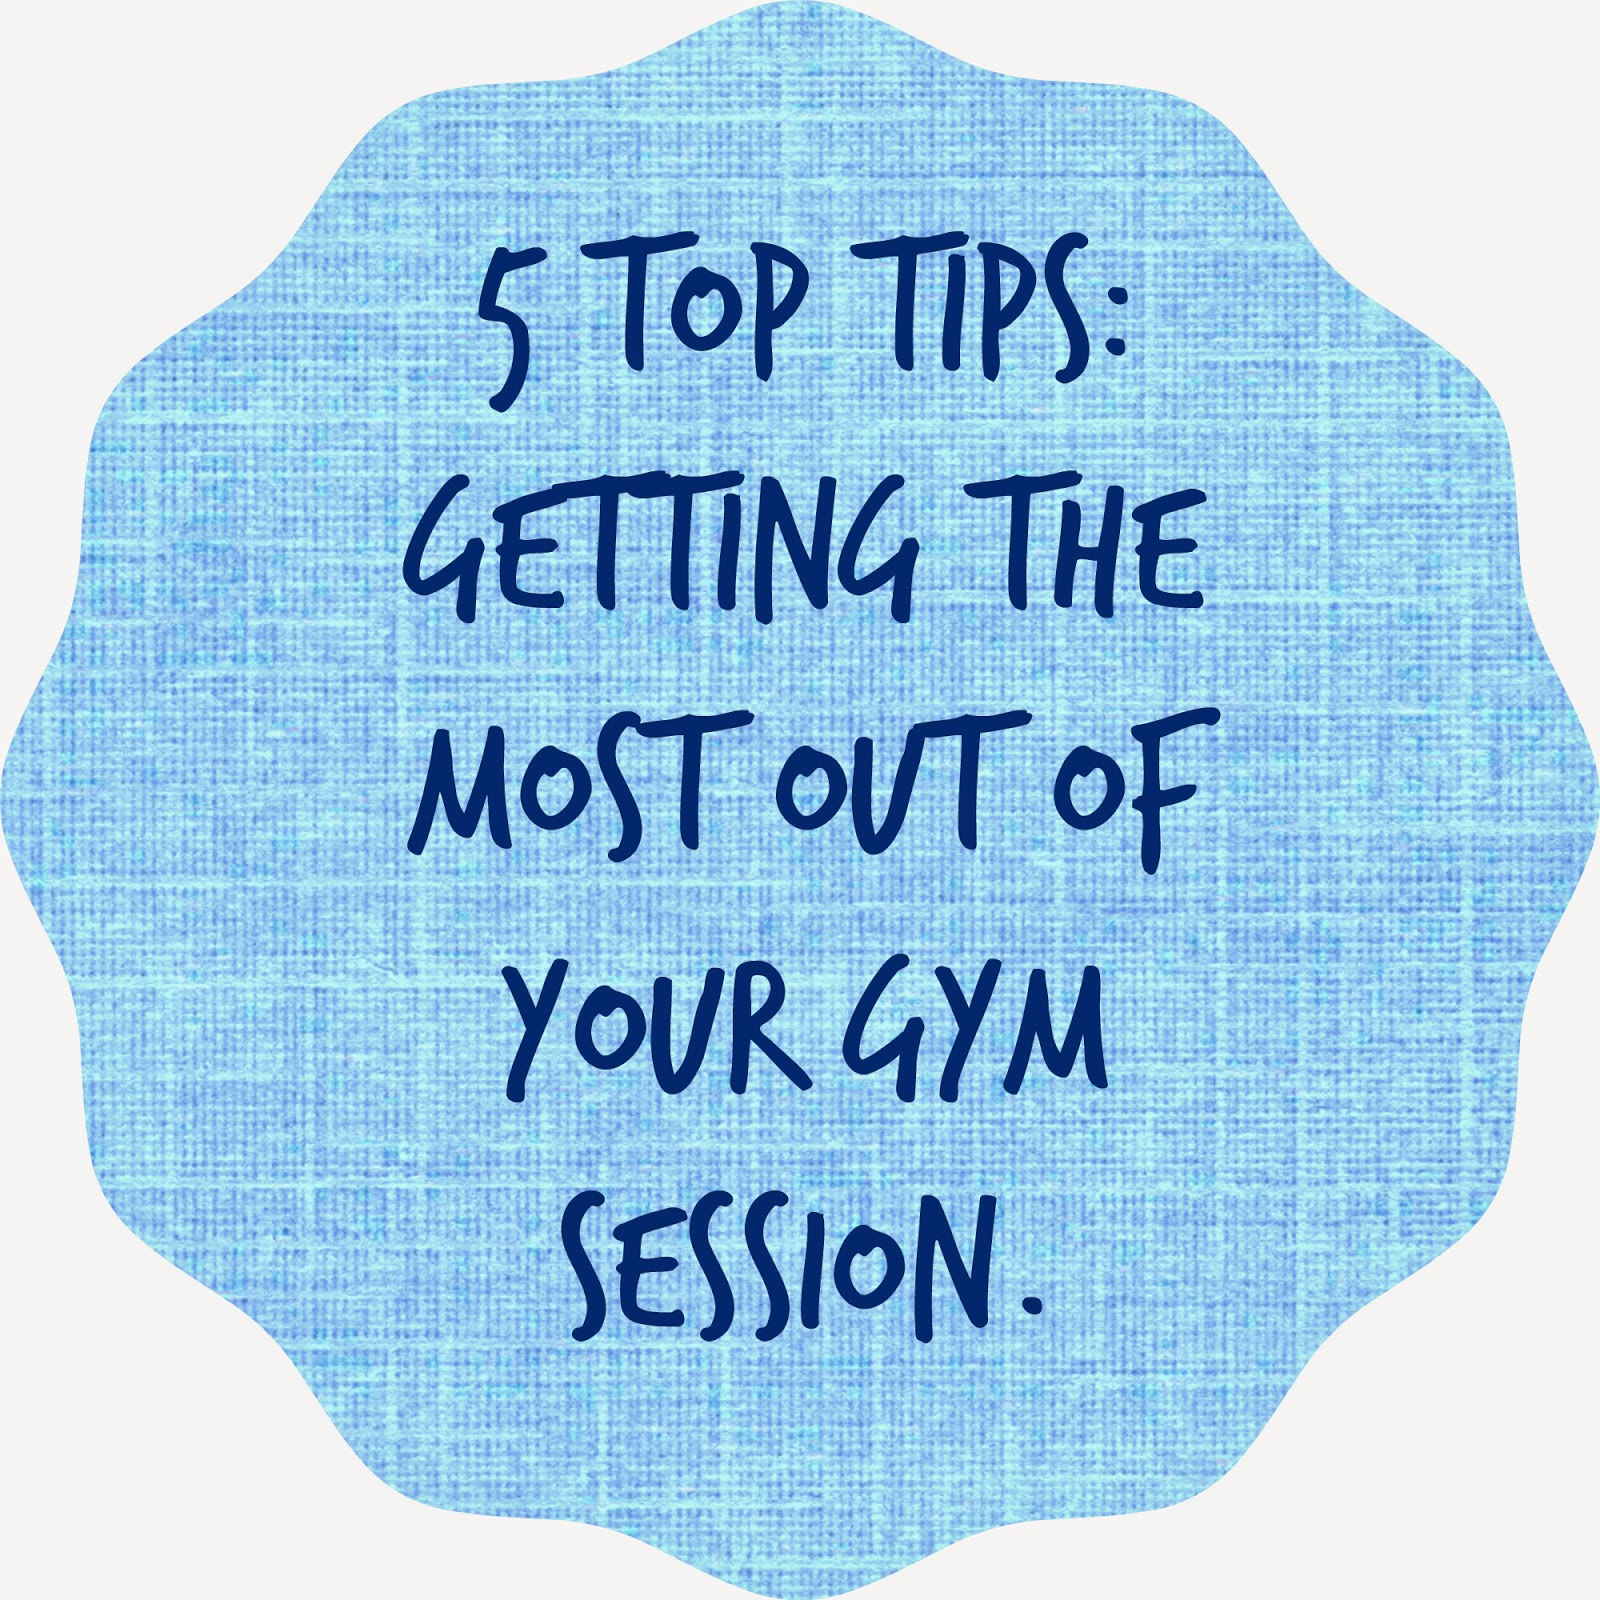 5 Top Tips: Getting the most out of your gym session - my general life